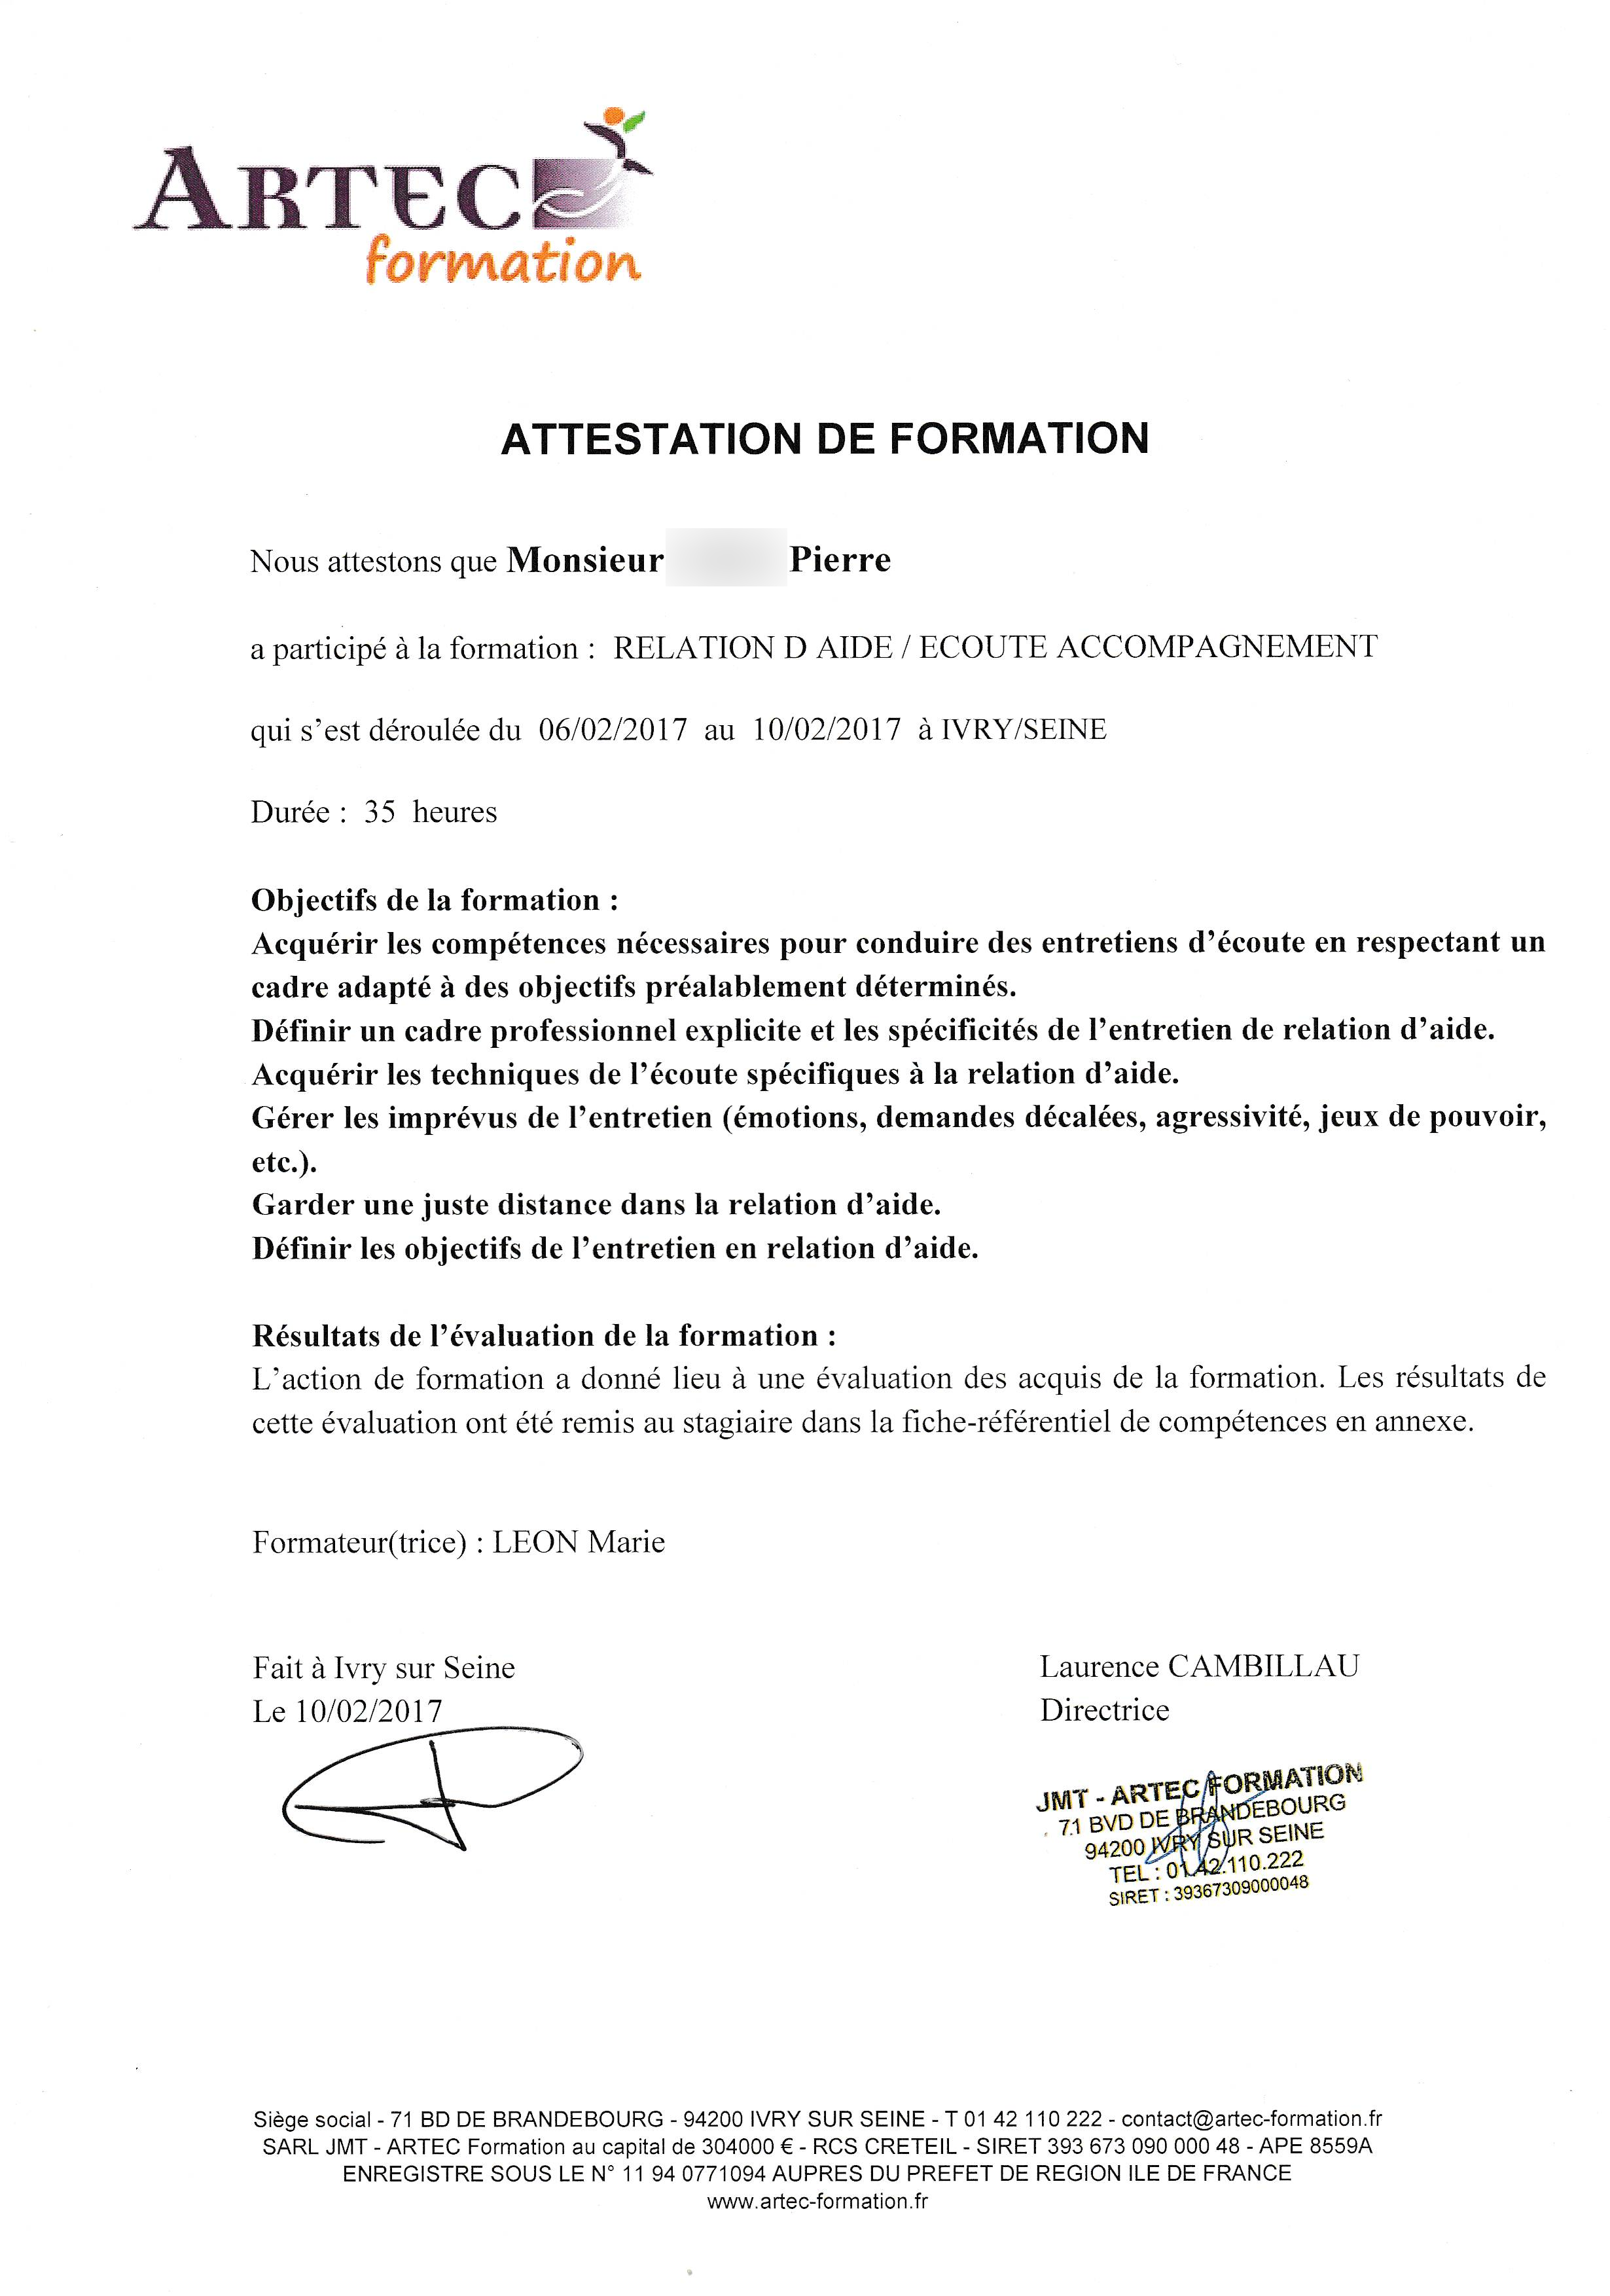 5a463b49ebc26_attestation relation d'aide.jpg